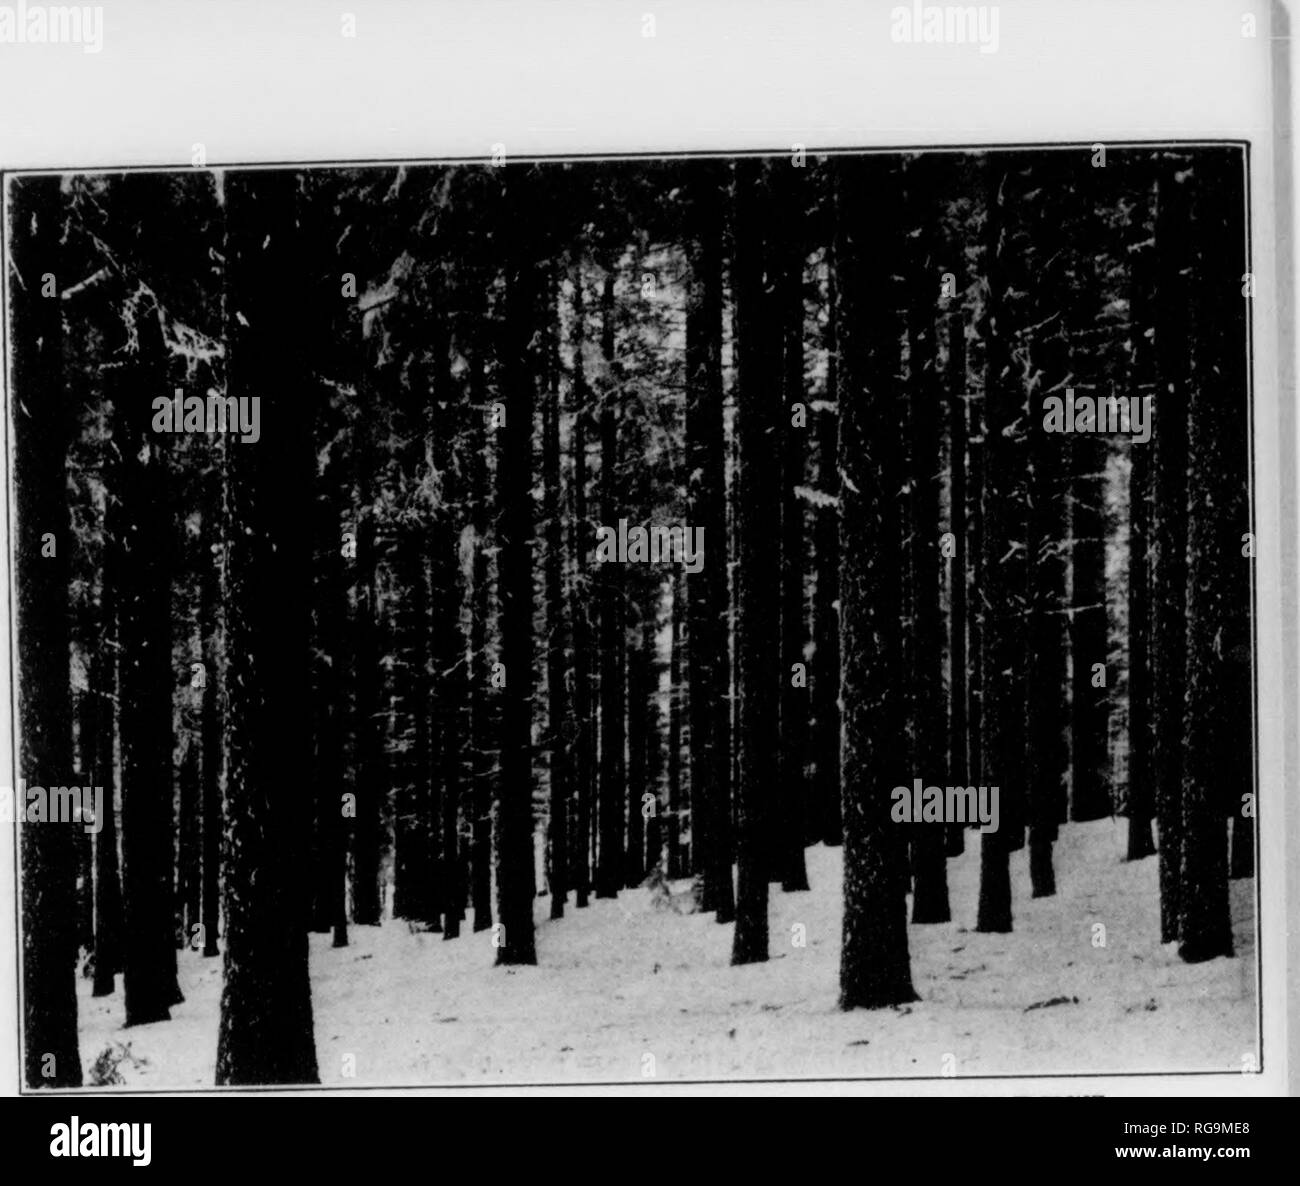 . Bulletin (Pennsylvania Department of Forestry), no. 11. Forests and forestry. Illll III. Fig 1.-) NATURAL HKGKNKUATION OF THE FOREST. Norway Spruce before seeding cutting. Opening the leaf-canopy stimulates seed production.. Please note that these images are extracted from scanned page images that may have been digitally enhanced for readability - coloration and appearance of these illustrations may not perfectly resemble the original work.. Pennsylvania. Dept. of Forestry. Harrisburg, Pa. : The Department : WM. Stanley Ray, state printer of Pennsylvania - Stock Image